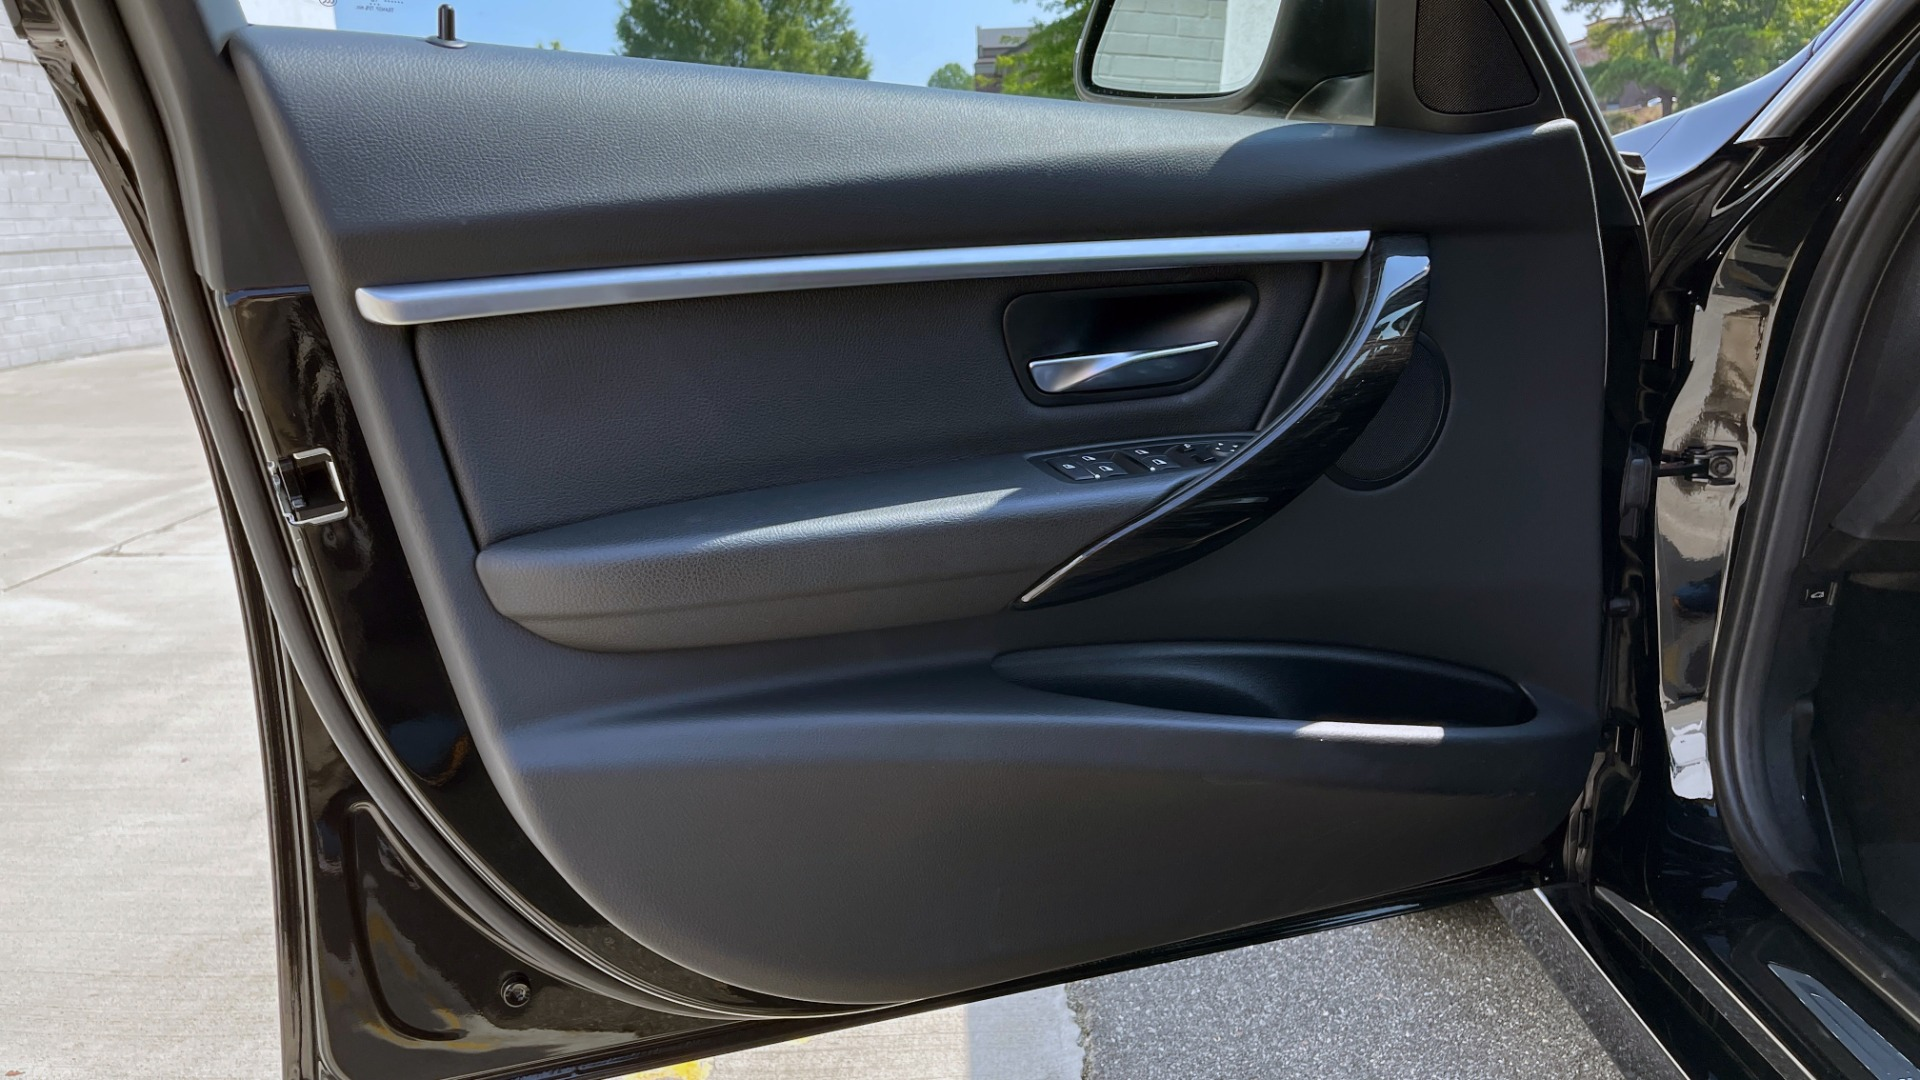 Used 2018 BMW 3 SERIES 330I XDRIVE / CONV PKG / SUNROOF / HTD STS / ABSD / REARVIEW for sale $30,695 at Formula Imports in Charlotte NC 28227 27